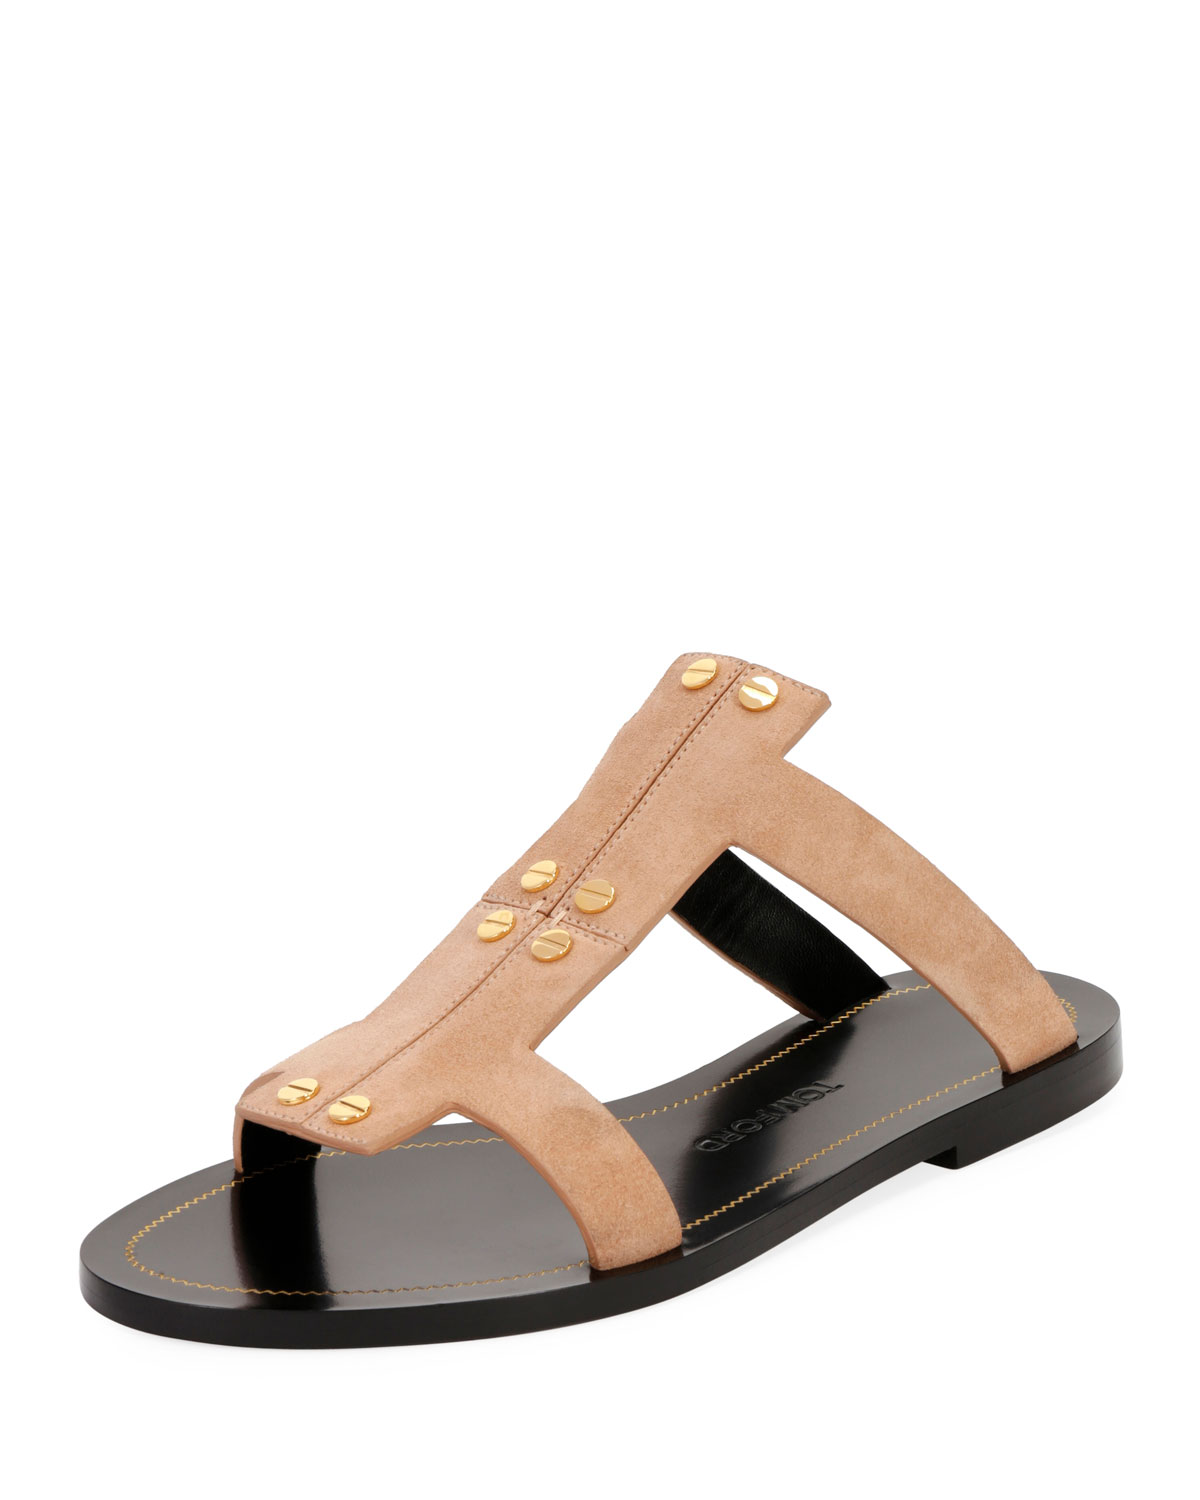 37aeac2dd15726 TOM FORD Studded Suede Flat Caged Sandal